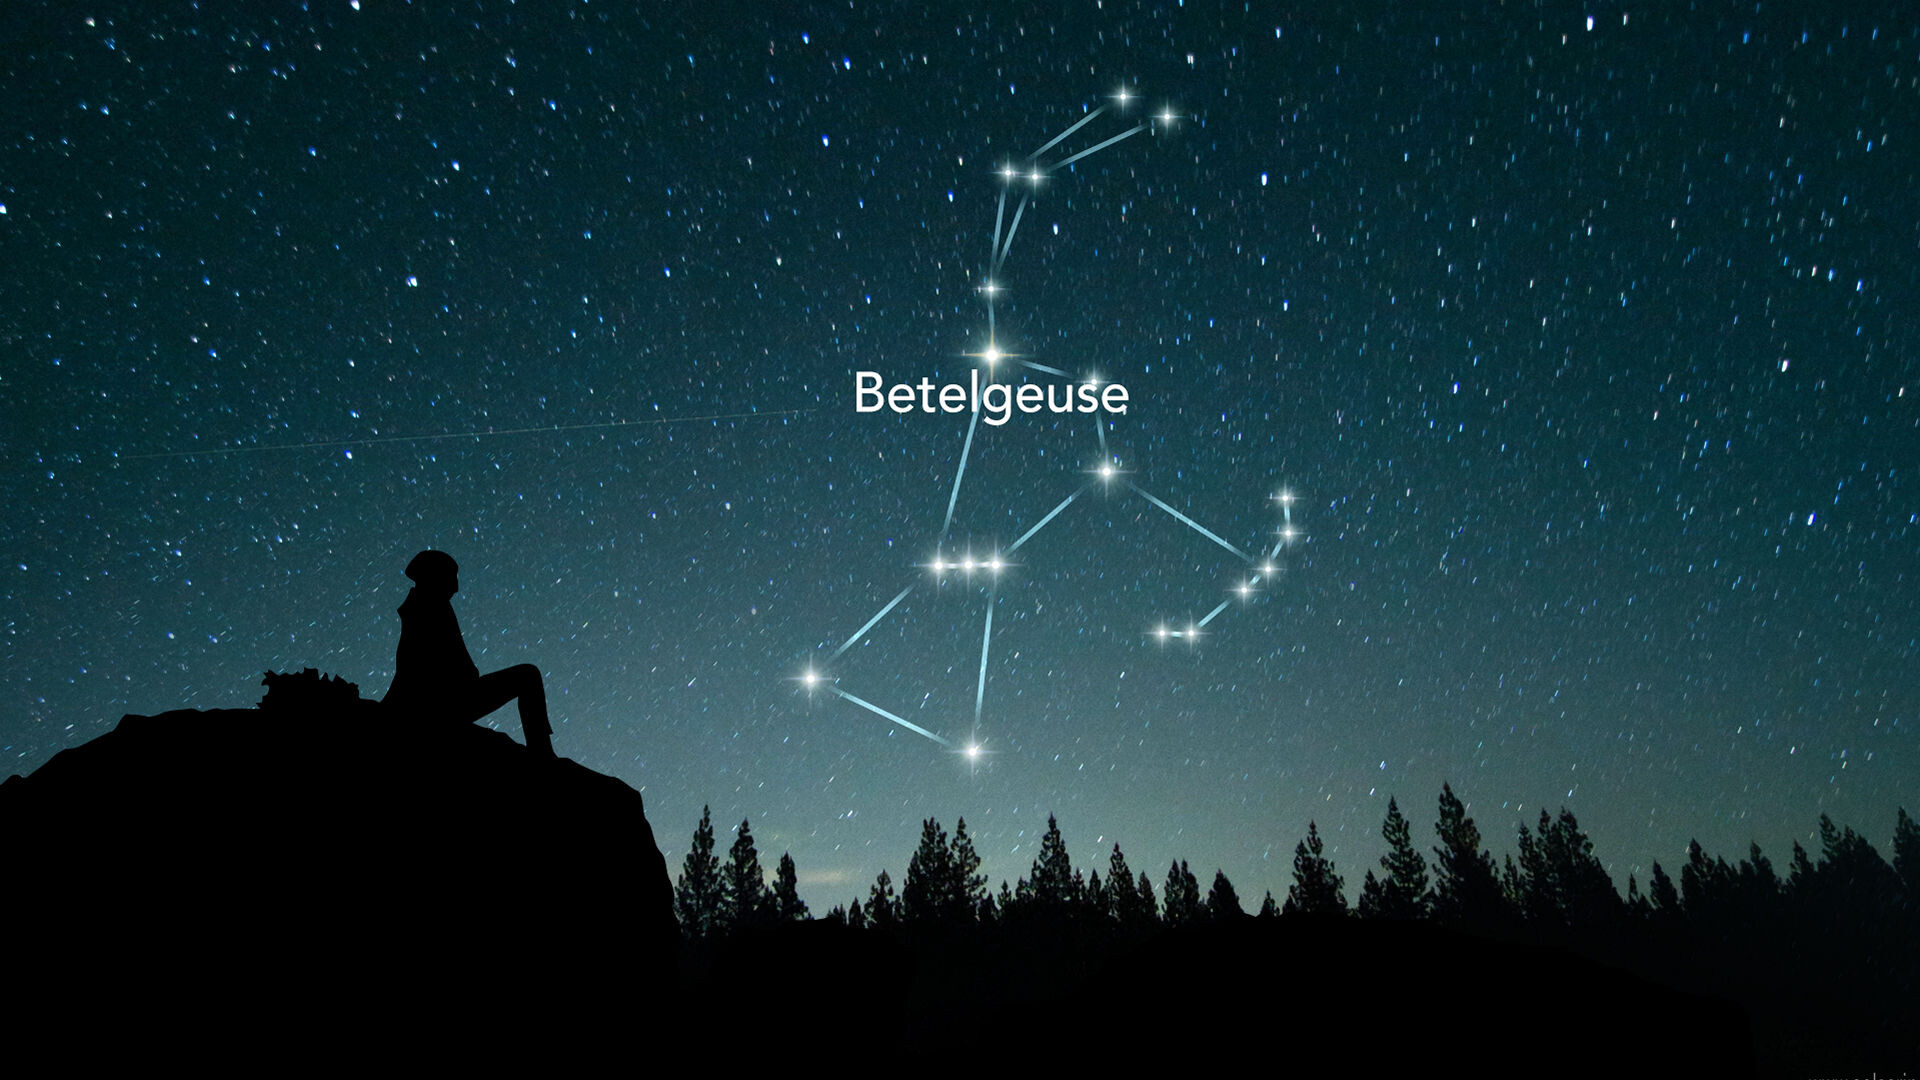 betelgeuse is part of which constellation?